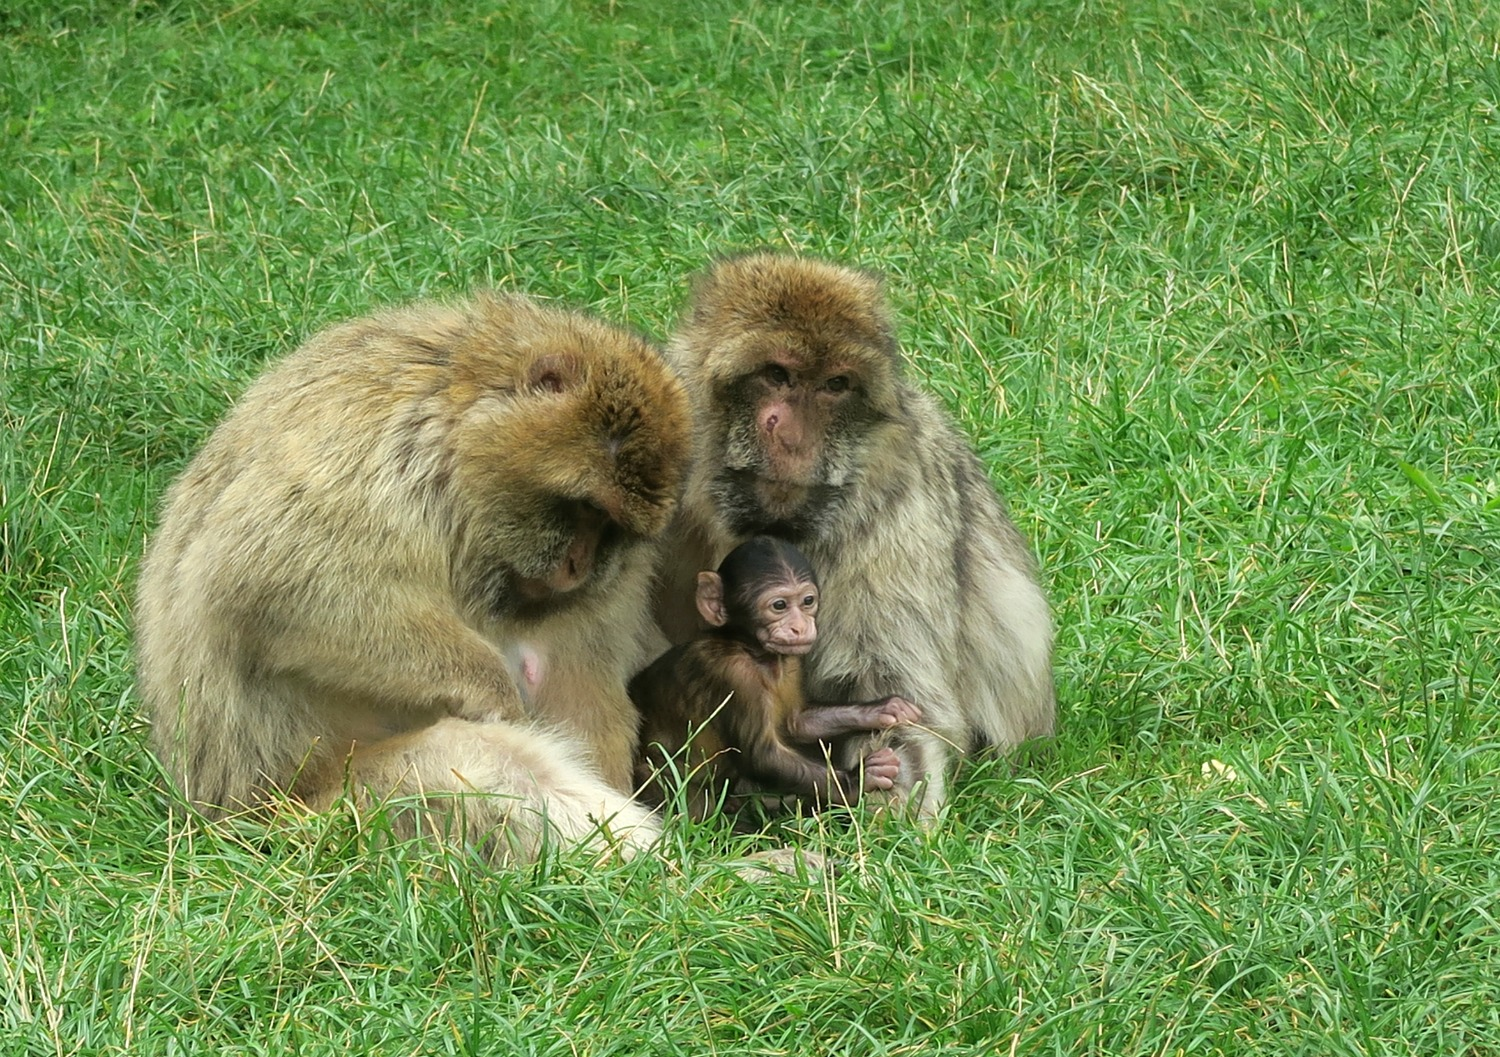 One of the baby monkeys at Trentham Monkey Forest along with two adult females - our family day out to the Trentham Estate